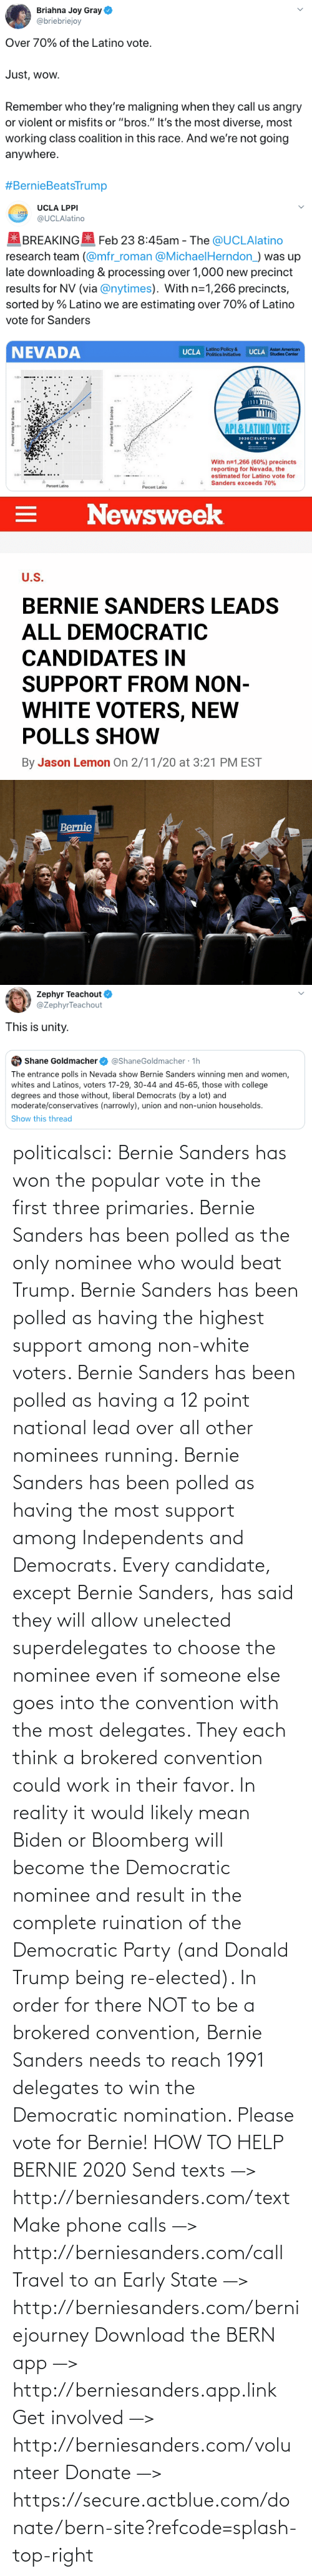 Travel: politicalsci: Bernie Sanders has won the popular vote in the first three primaries. Bernie Sanders has  been polled as the only nominee who would beat Trump. Bernie Sanders  has been polled as having the highest support among non-white voters.  Bernie Sanders has been polled as having a 12 point national lead over  all other nominees running. Bernie Sanders has been polled as having the most support among Independents and Democrats.  Every candidate, except Bernie Sanders, has said they will allow  unelected superdelegates to choose the nominee even if someone else goes  into the convention with the most delegates. They each think a brokered  convention could work in their favor. In  reality it would likely mean Biden or Bloomberg will become the  Democratic nominee and result in the complete ruination of the  Democratic Party (and Donald Trump being re-elected). In order for there  NOT to be a brokered  convention, Bernie Sanders needs to reach 1991 delegates to win the  Democratic  nomination. Please vote for Bernie!  HOW TO HELP BERNIE 2020 Send texts —> http://berniesanders.com/text  Make phone calls —> http://berniesanders.com/call  Travel to an Early State —> http://berniesanders.com/berniejourney  Download the BERN app —> http://berniesanders.app.link  Get involved —> http://berniesanders.com/volunteer Donate —> https://secure.actblue.com/donate/bern-site?refcode=splash-top-right